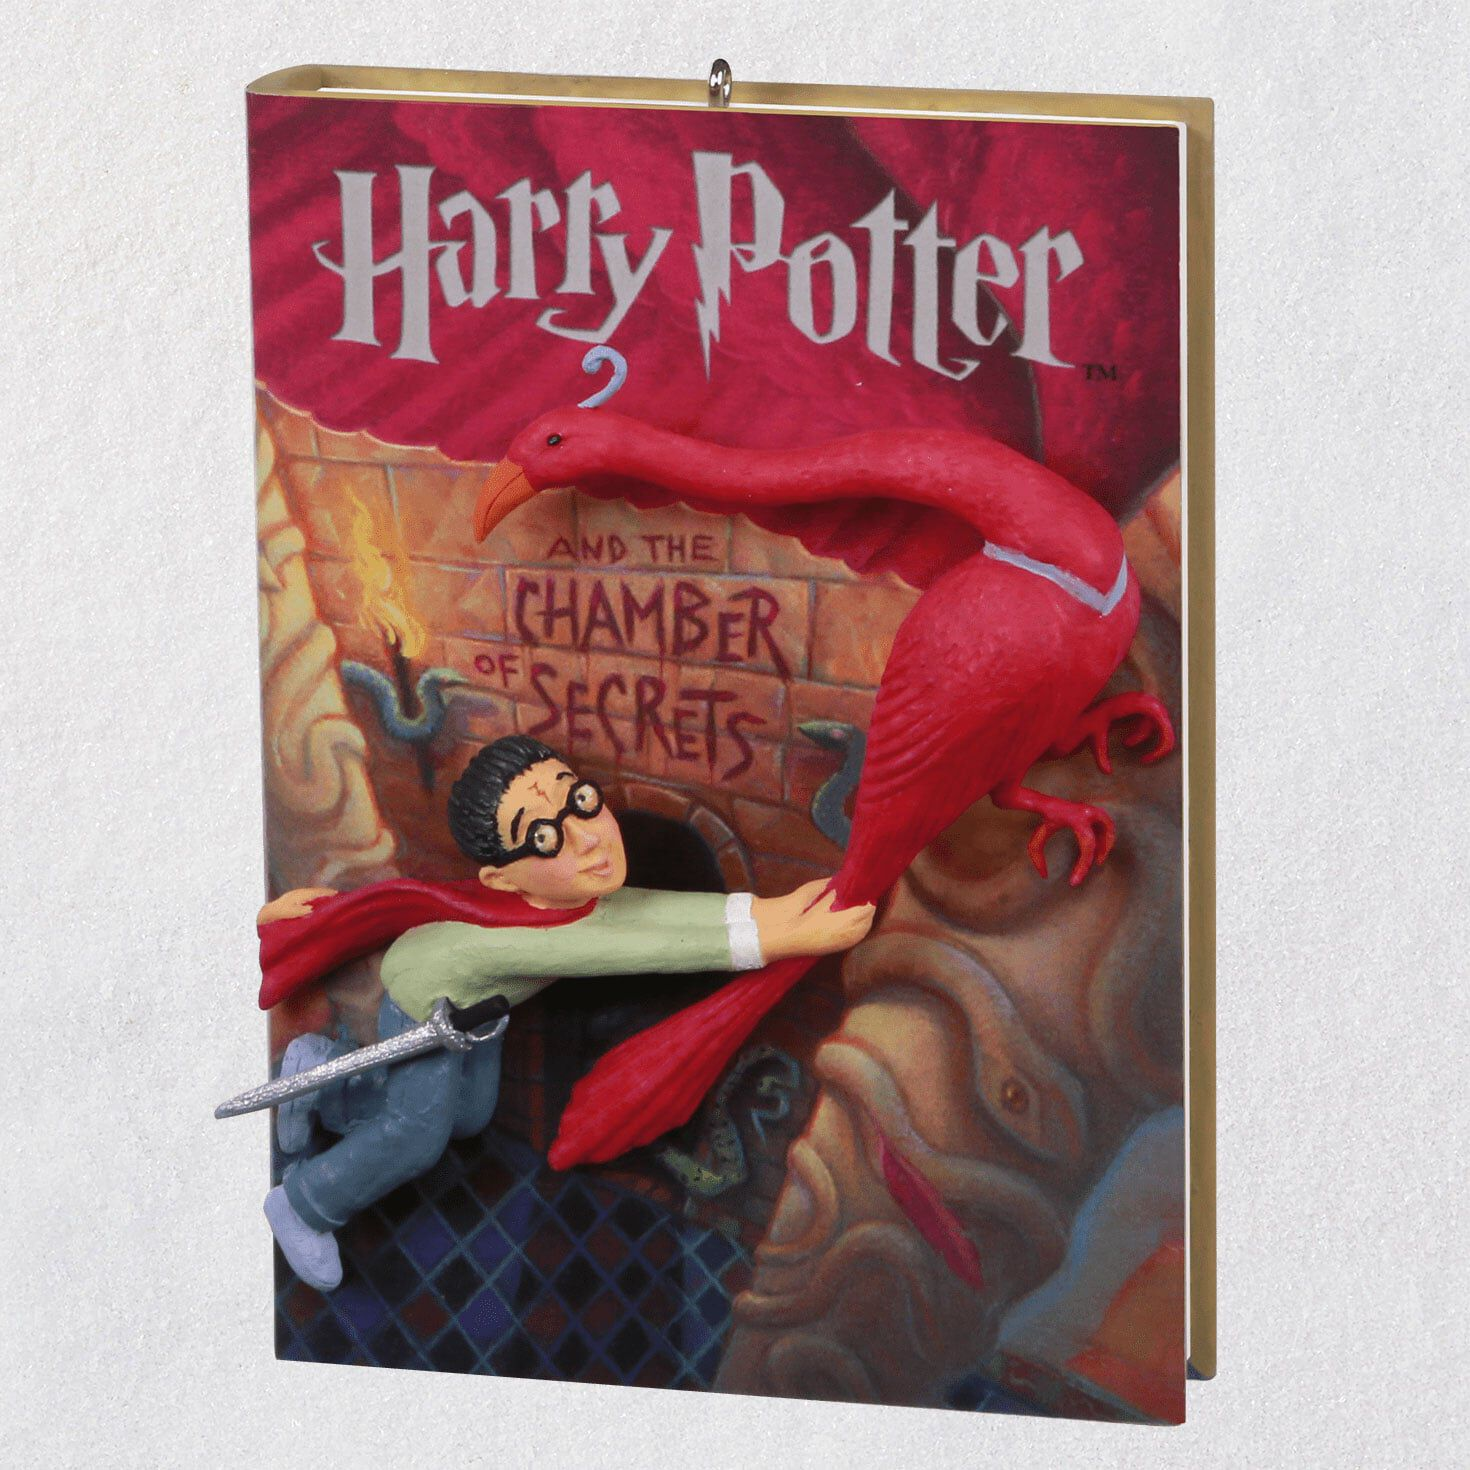 keepsake power cord (required for storytellers) keepsake ornamentsharry potter and the chamber of secrets™ ornament,